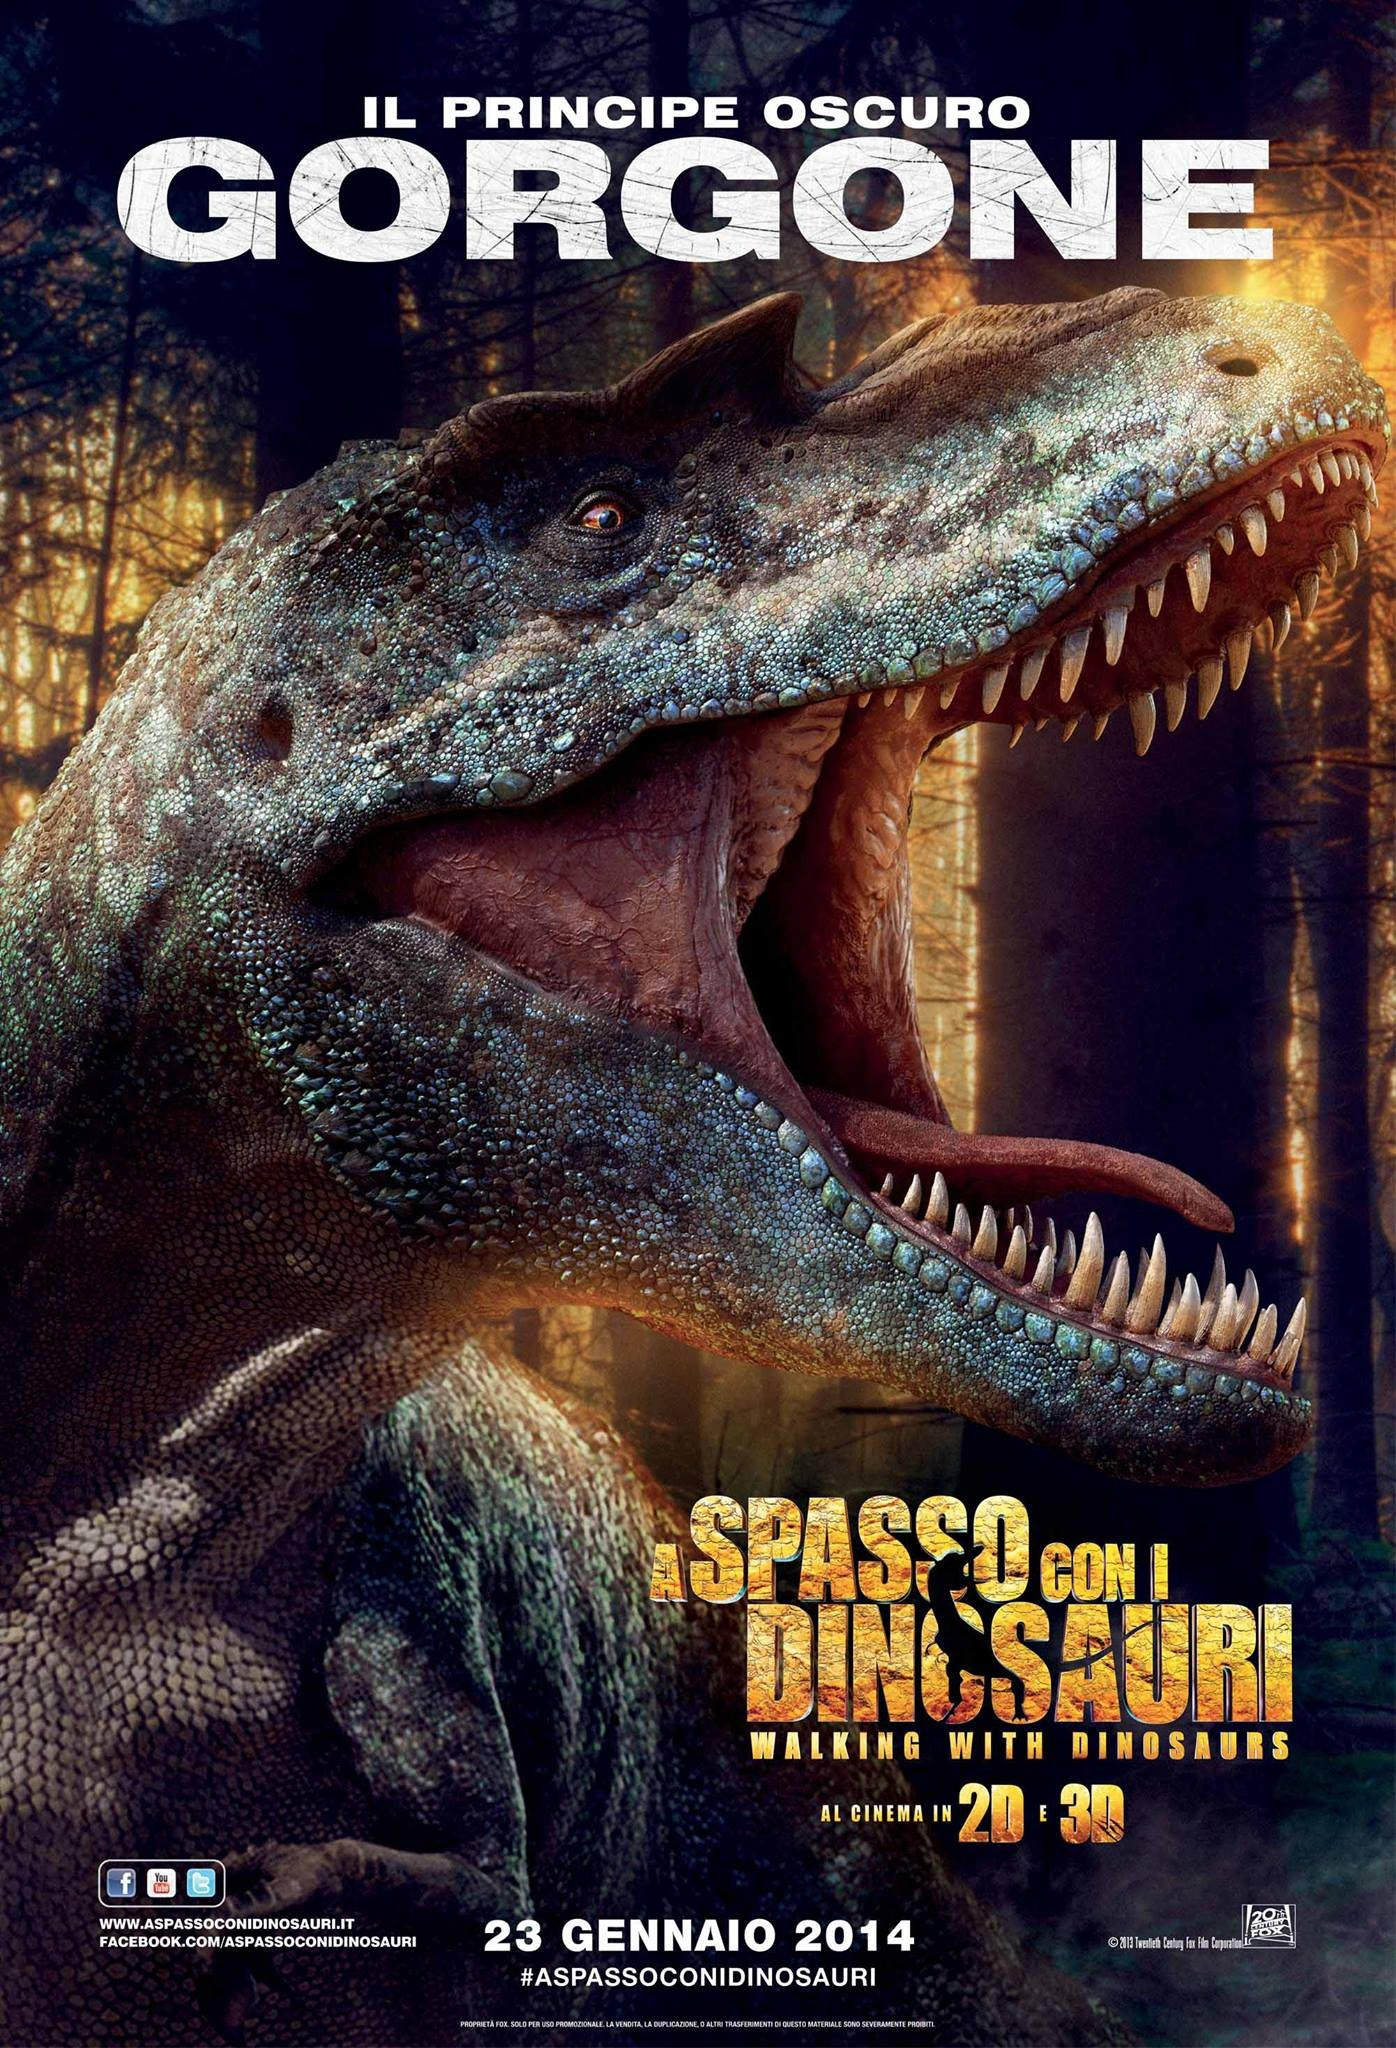 Walking with Dinosaurs-Official Poster Banner PROMO BANNER-27SETEMBRO2013-01